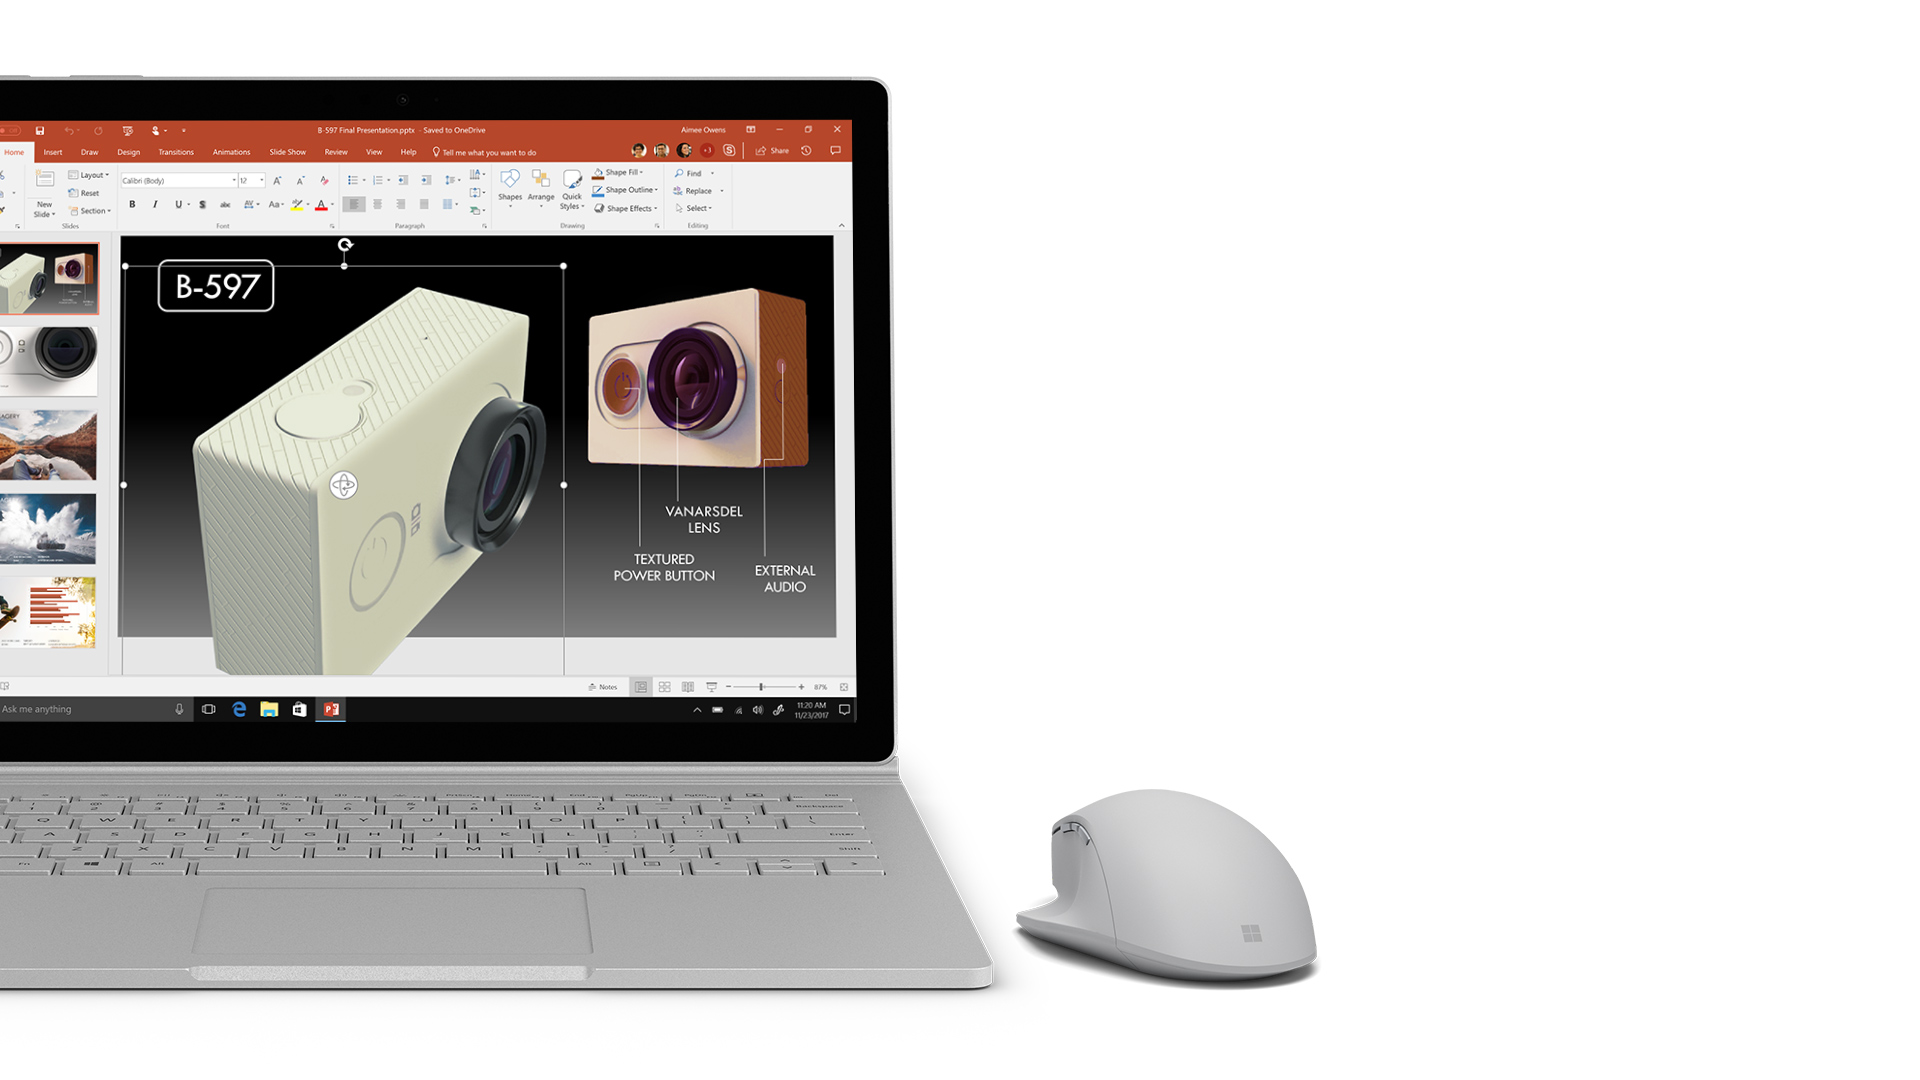 Surface mit PowerPoint-Screenshot.